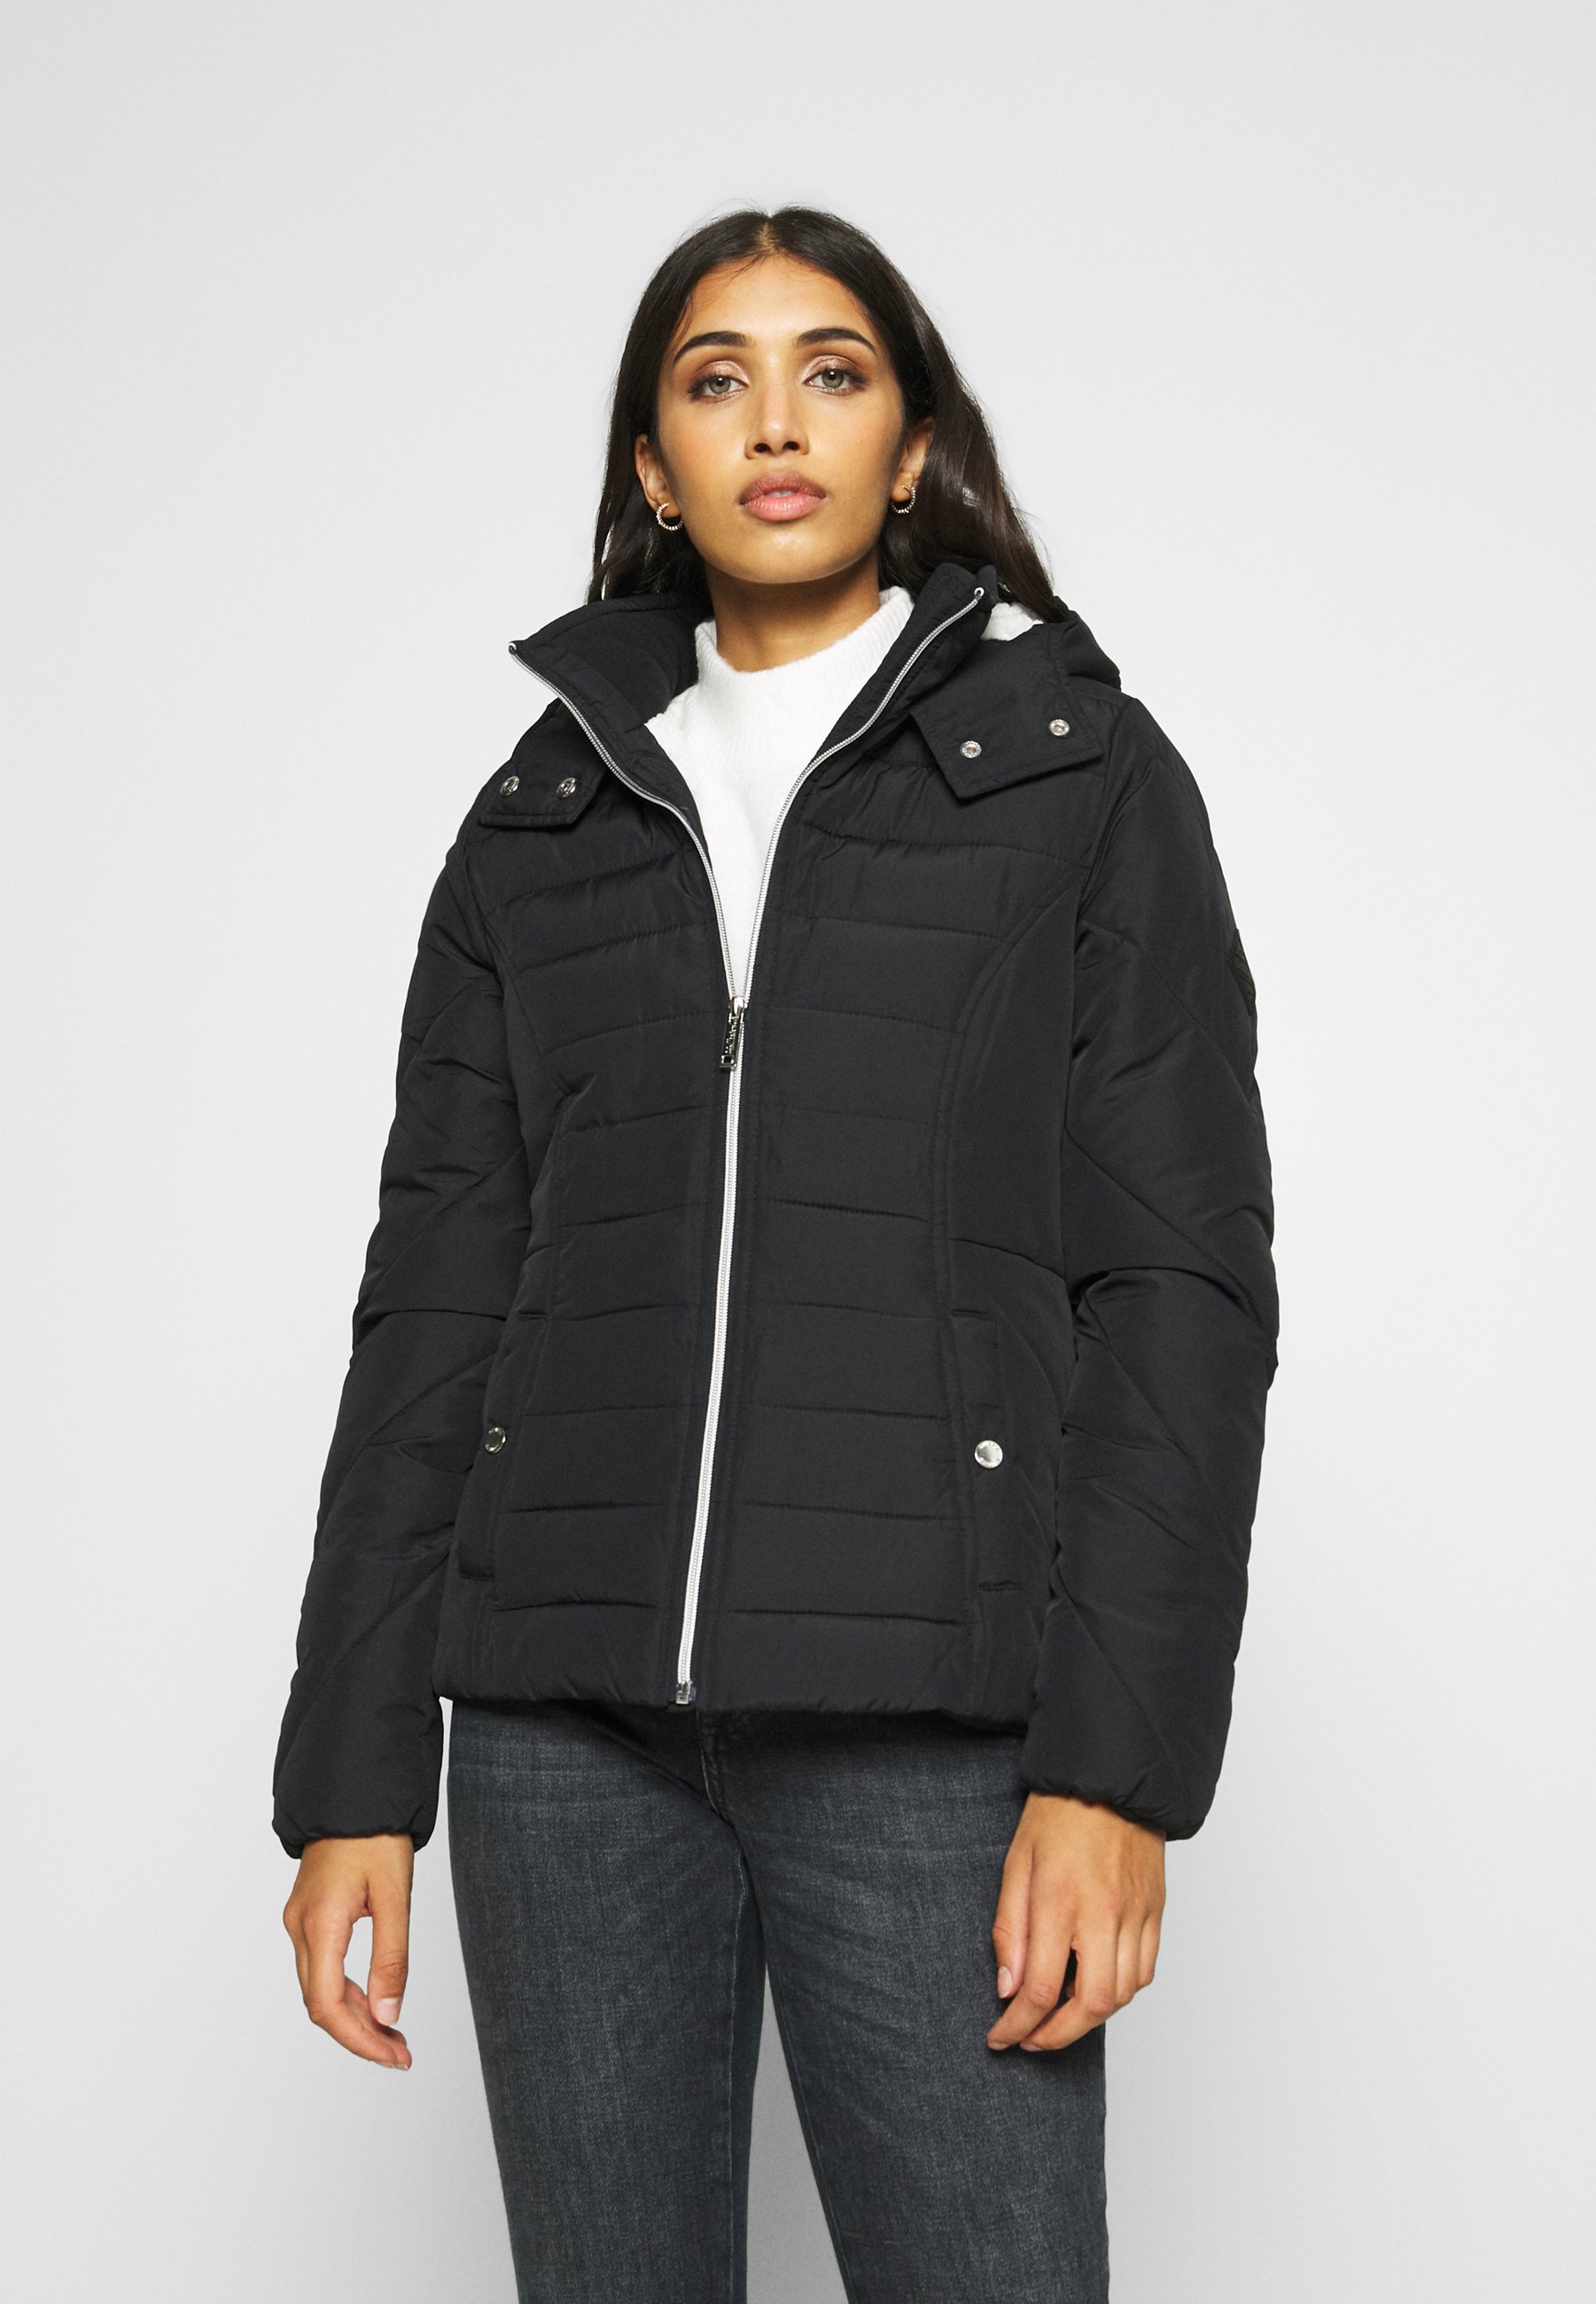 Hollister Co. Vinterjacka black Zalando.se